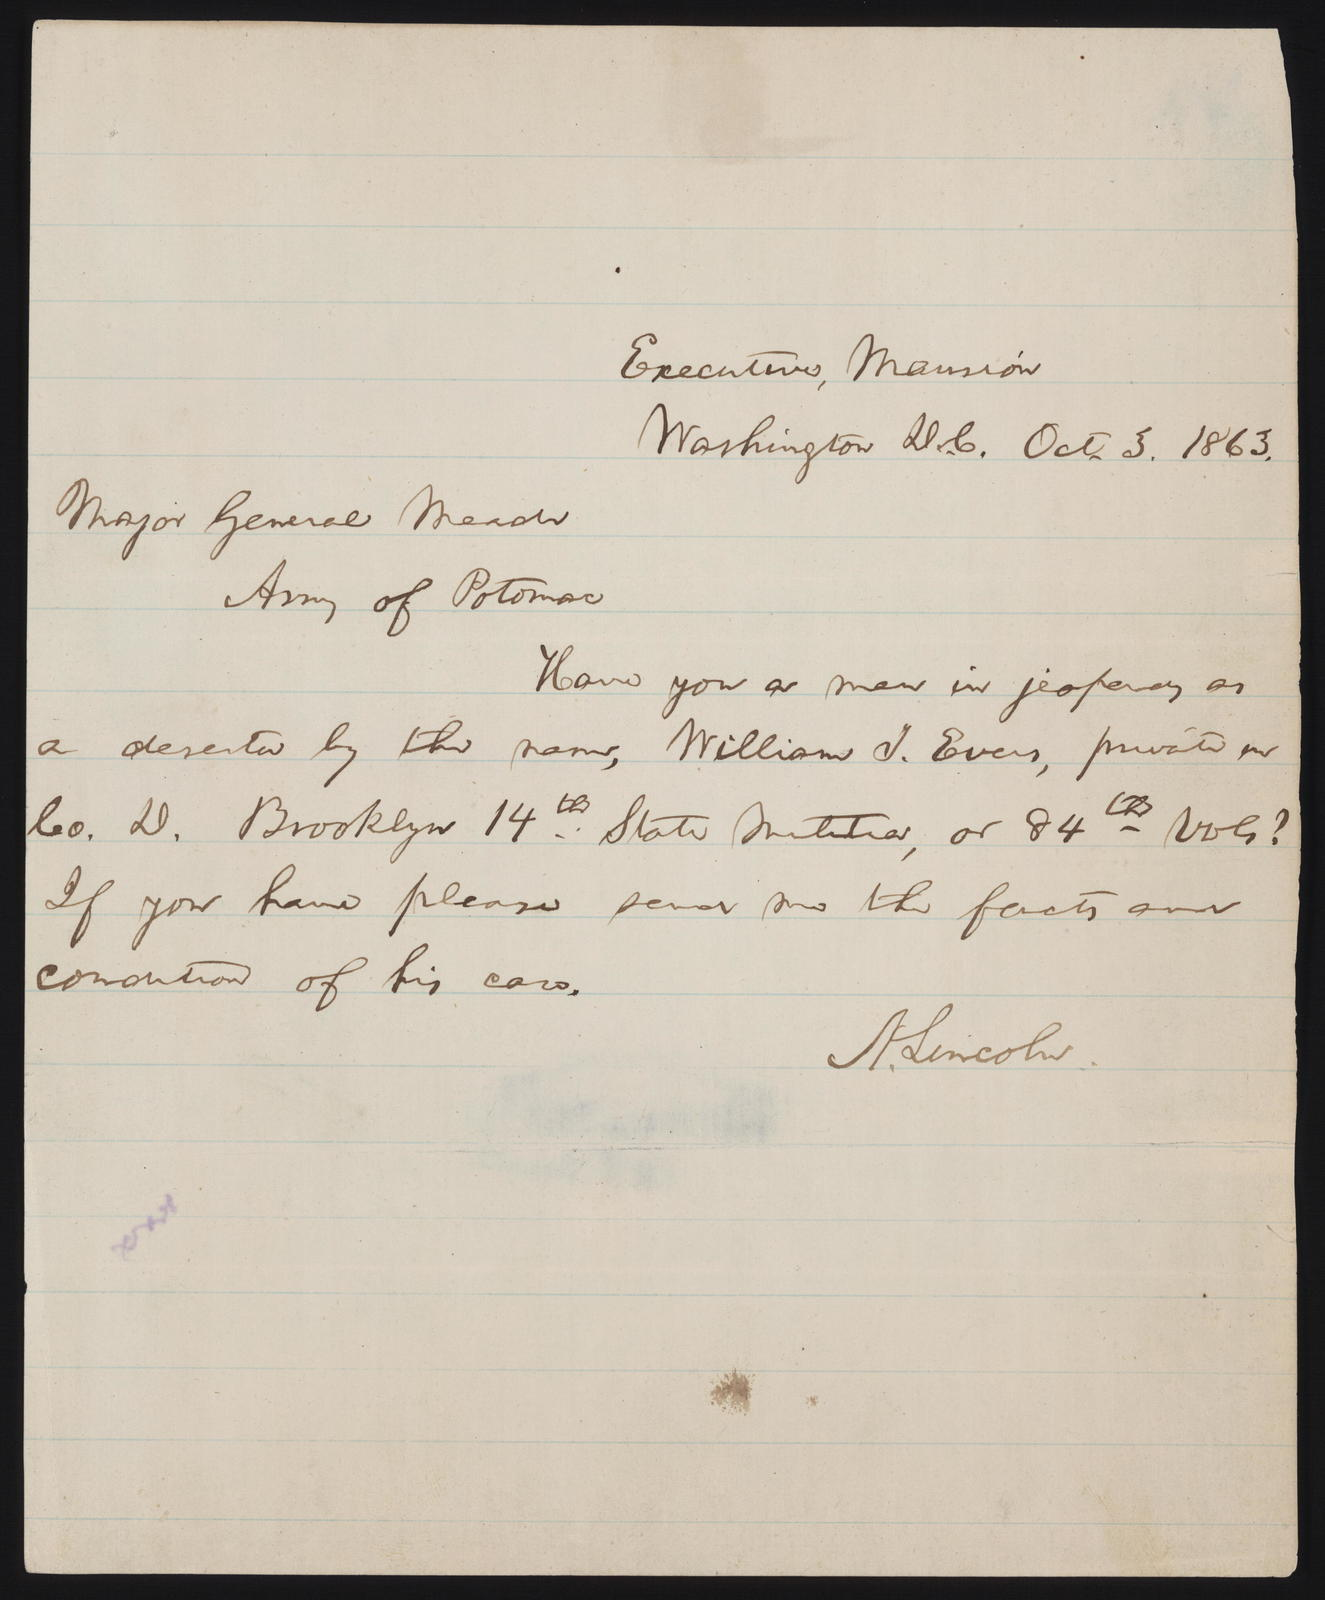 Letter to Major General Meade from Abraham Lincoln, October 5, 1863.